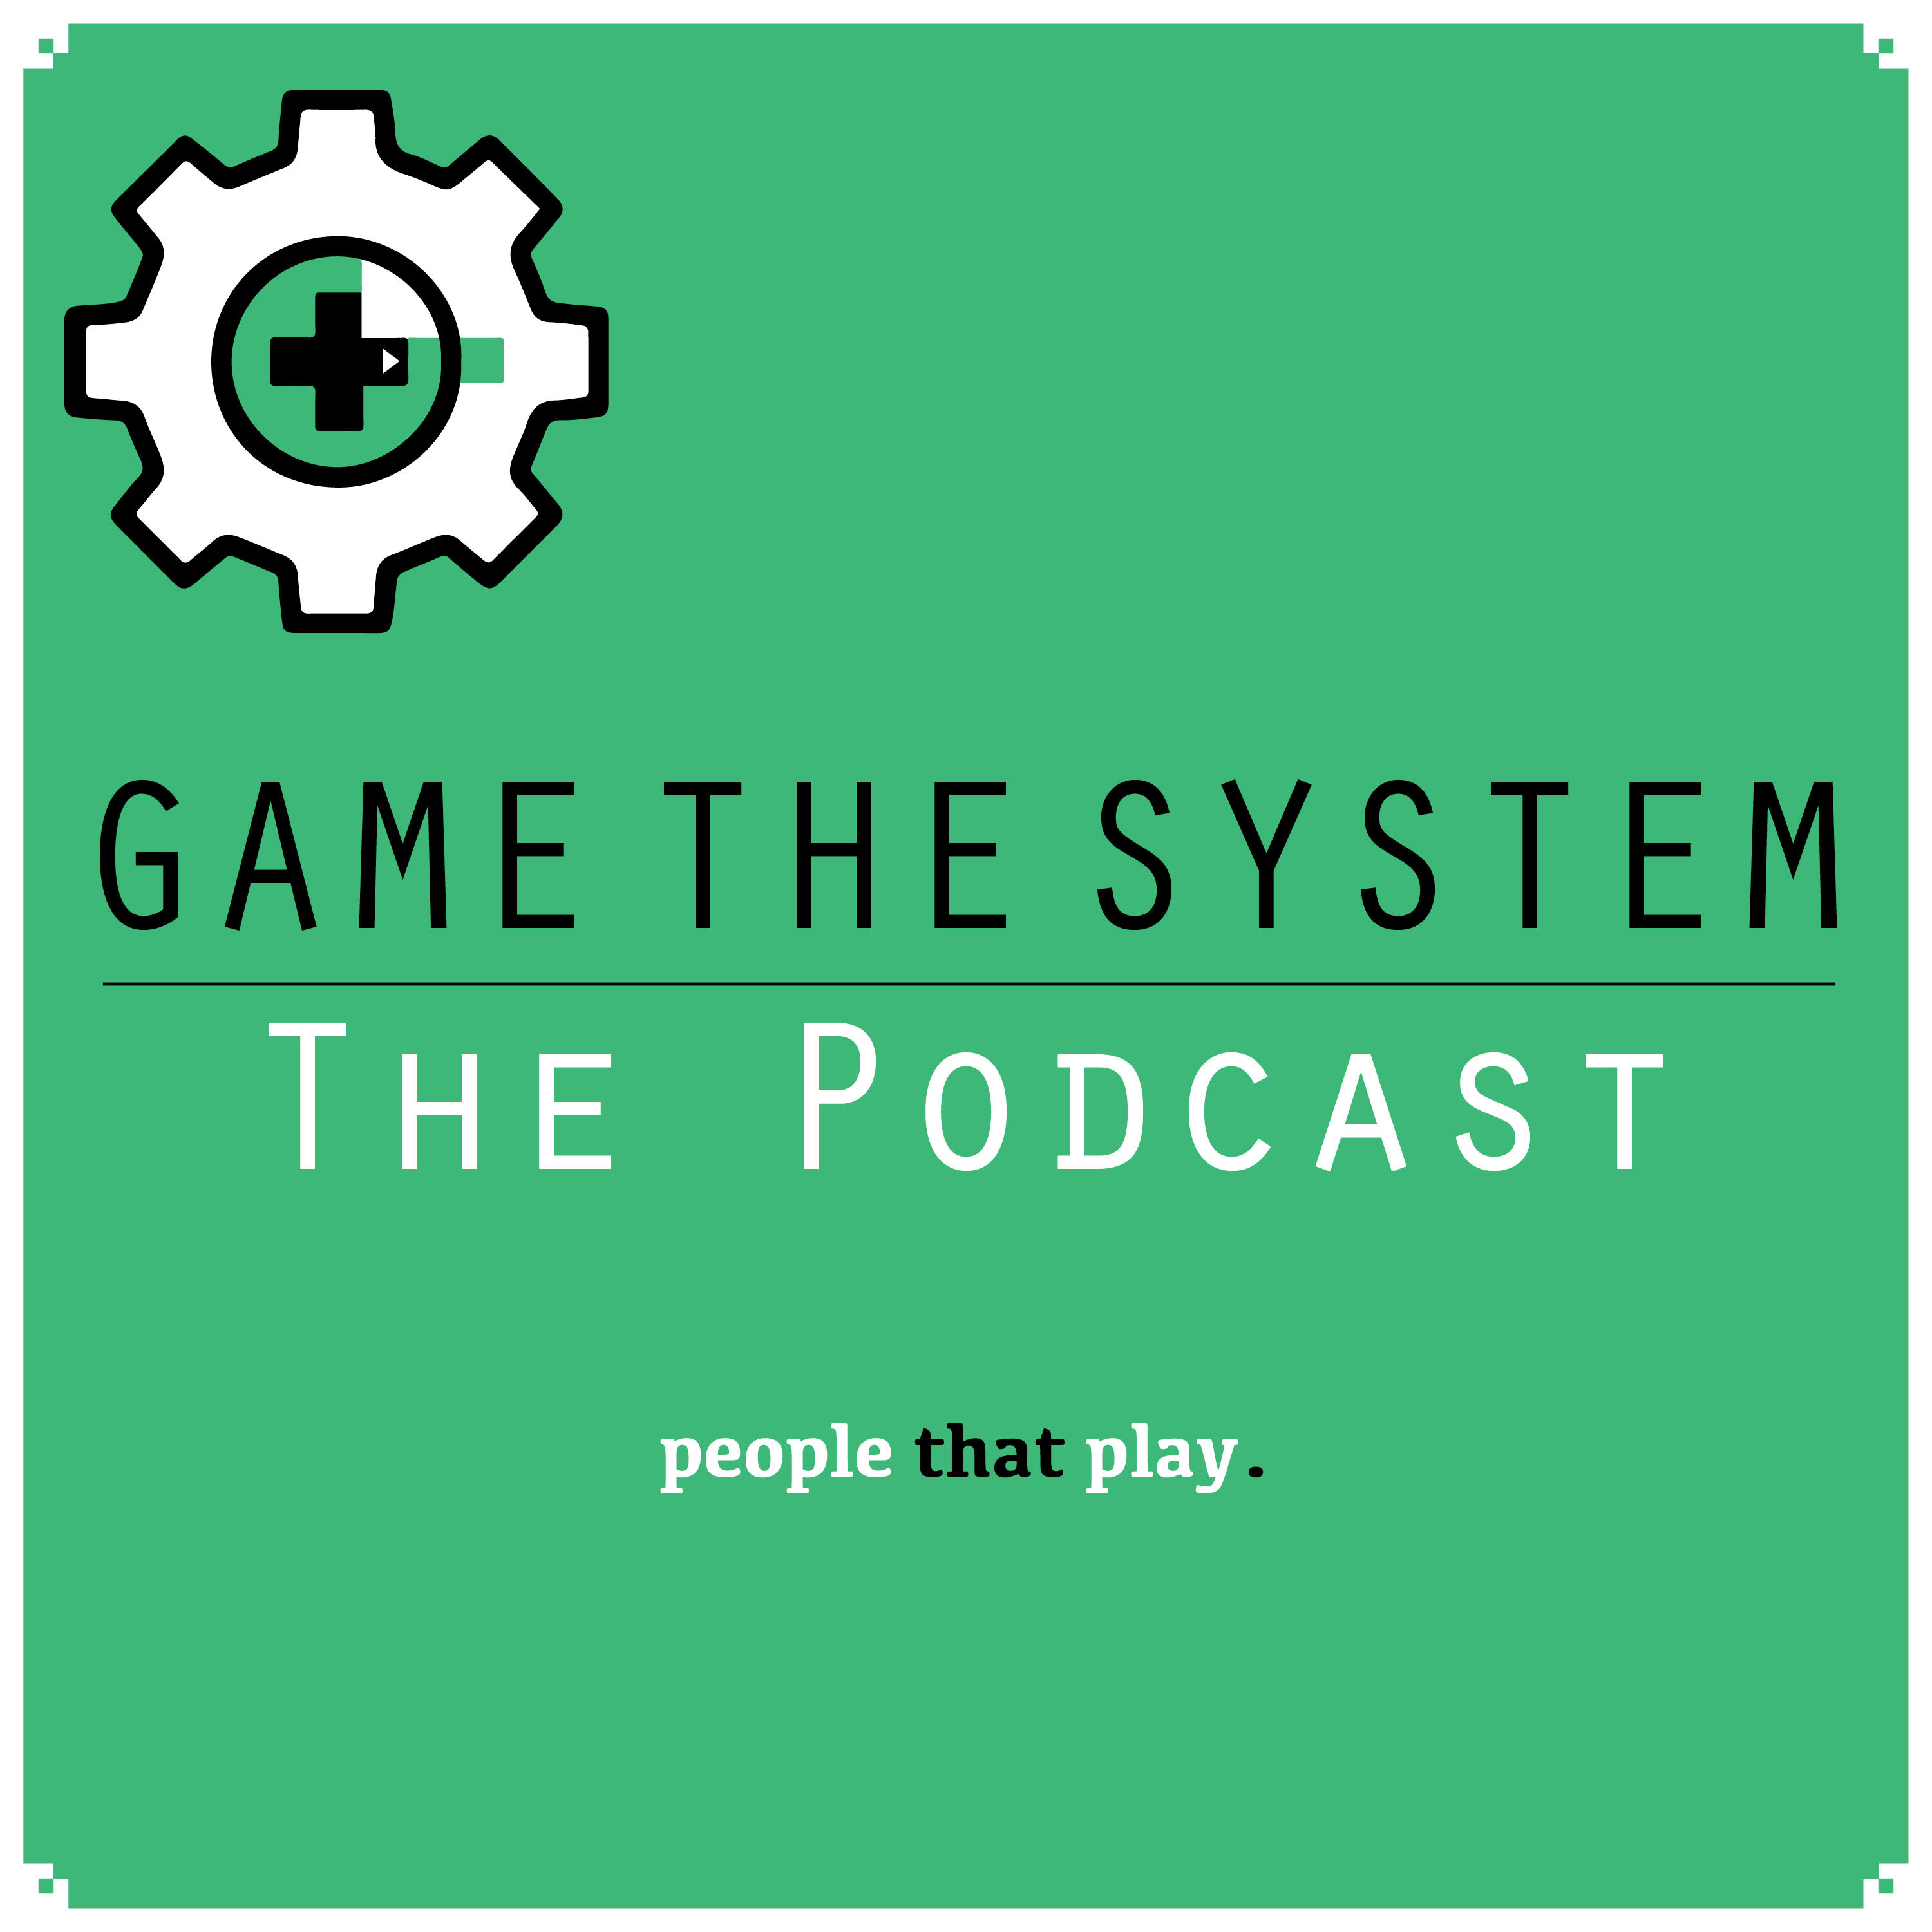 Game the System Podcast